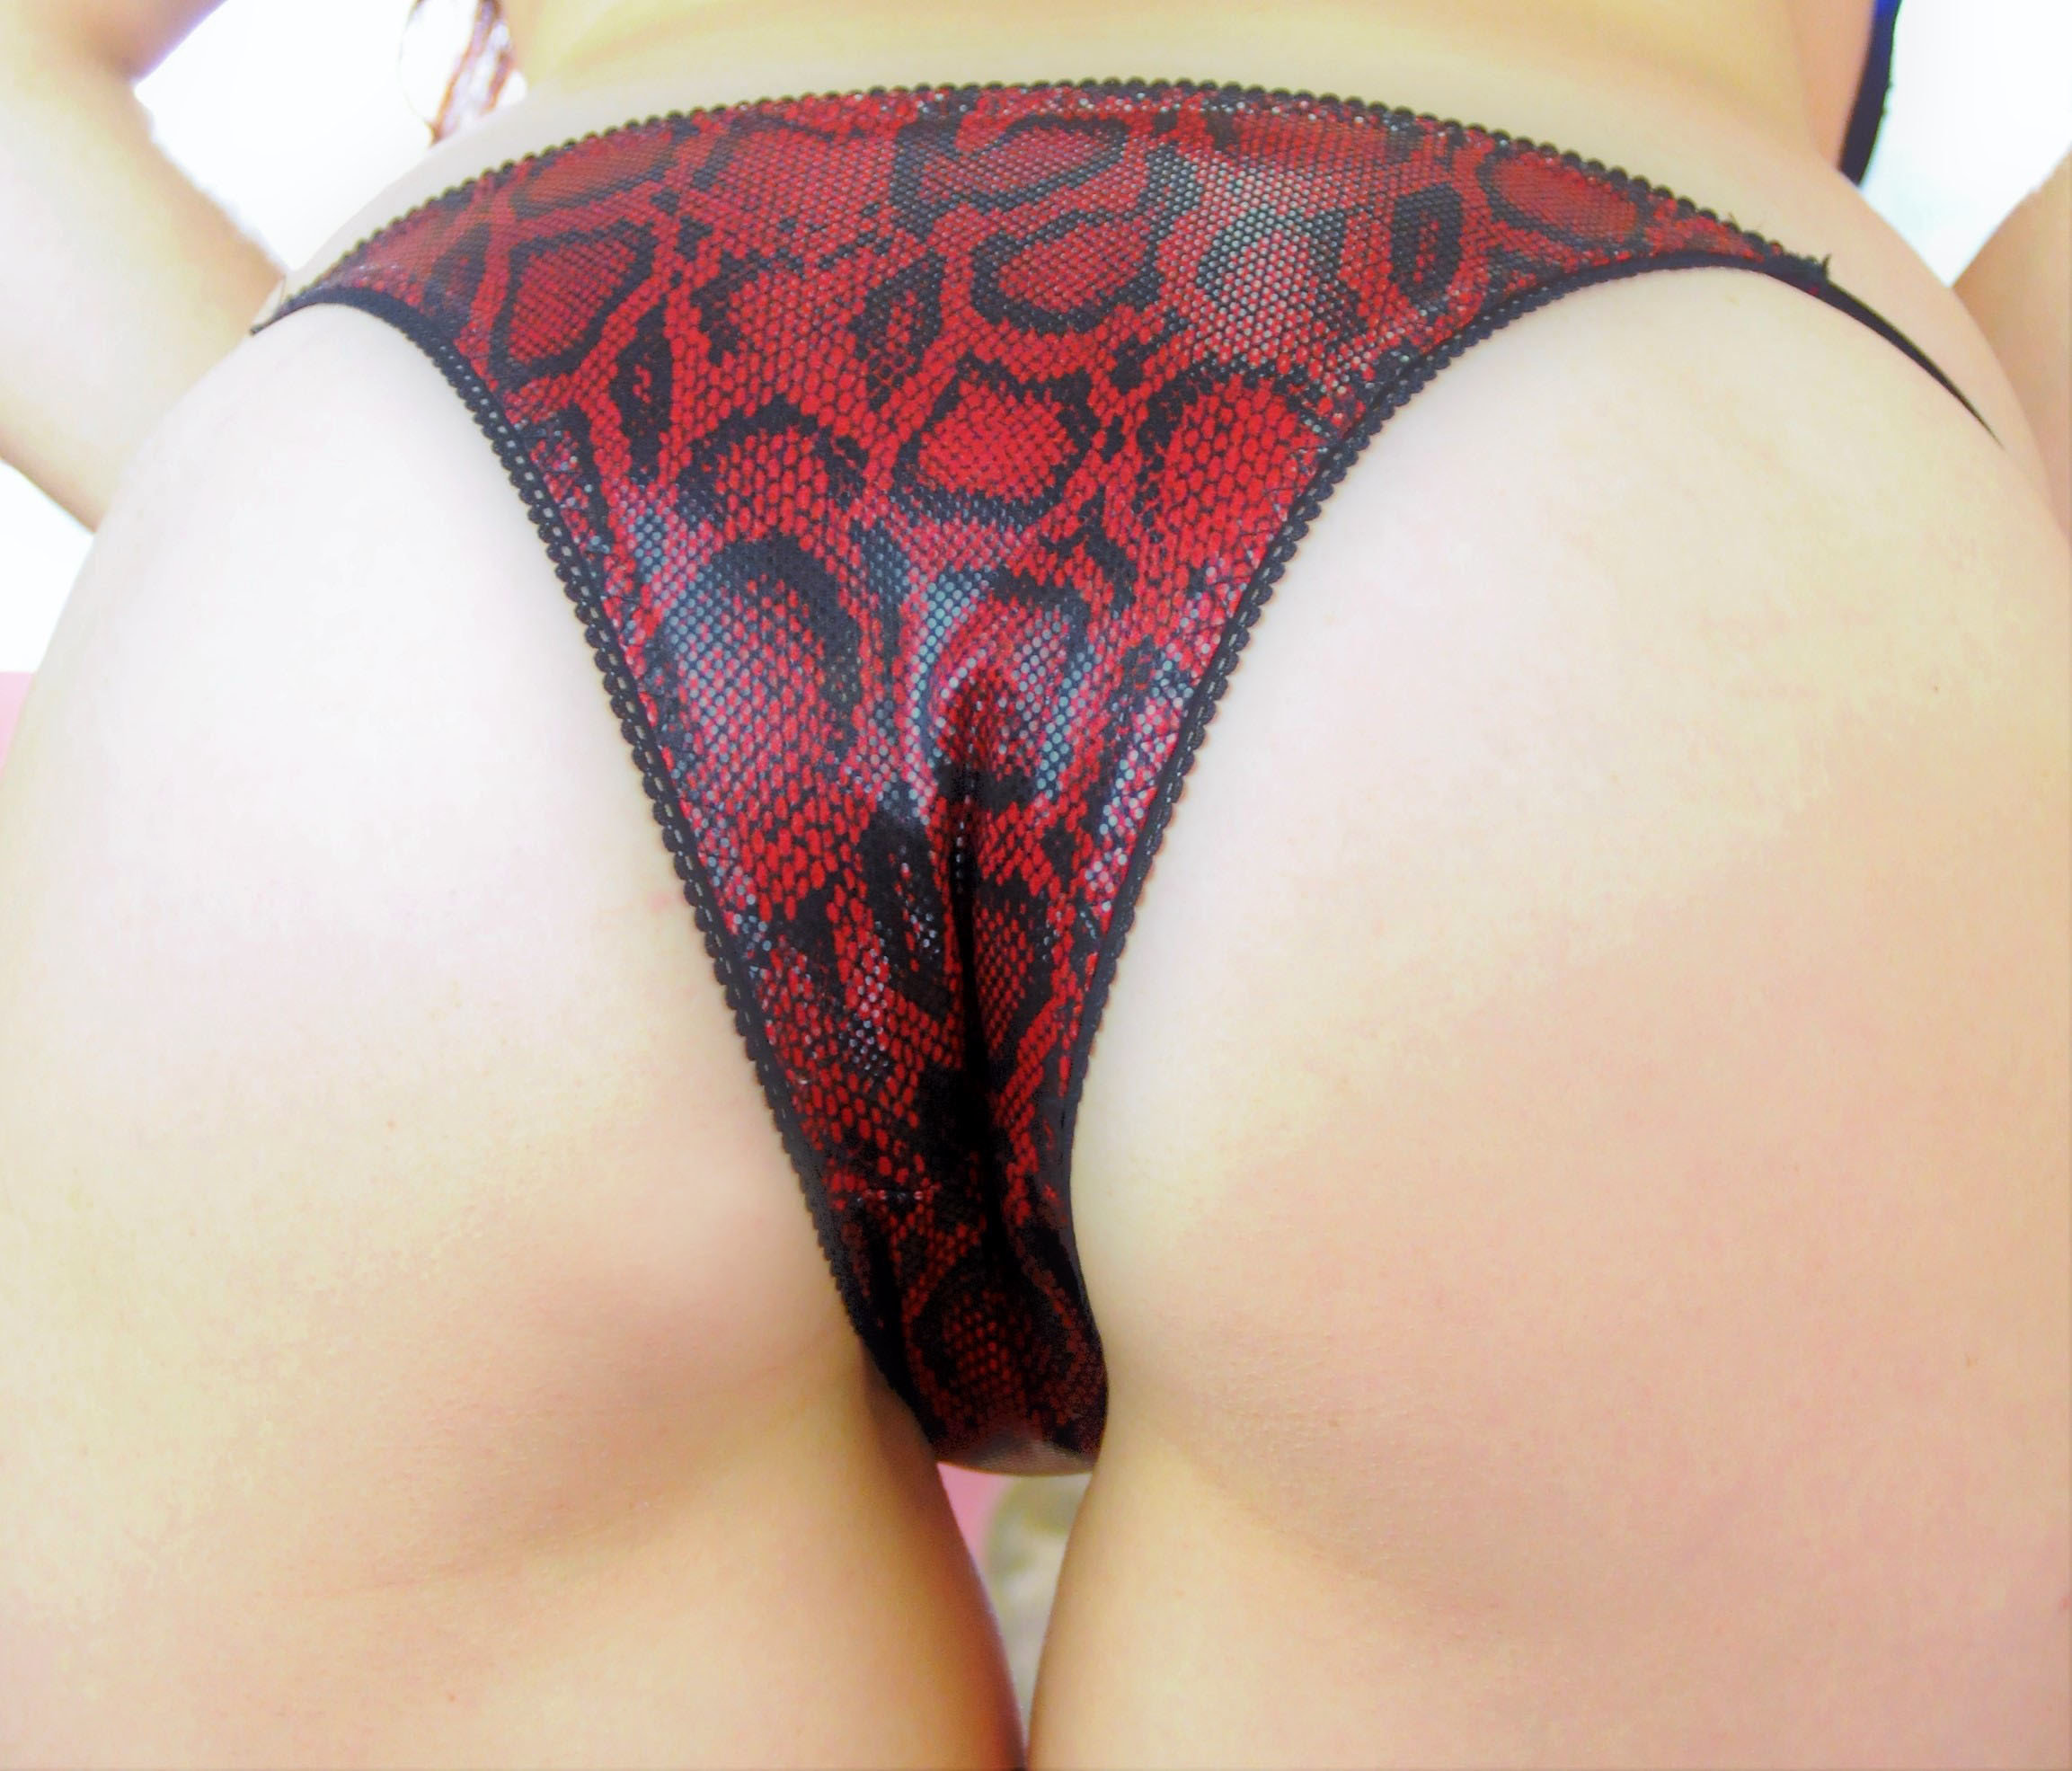 Ania's Cheeky Snake Skin naughty Brazilian Exotic dancer stripper panties with adjustable sides! 00210